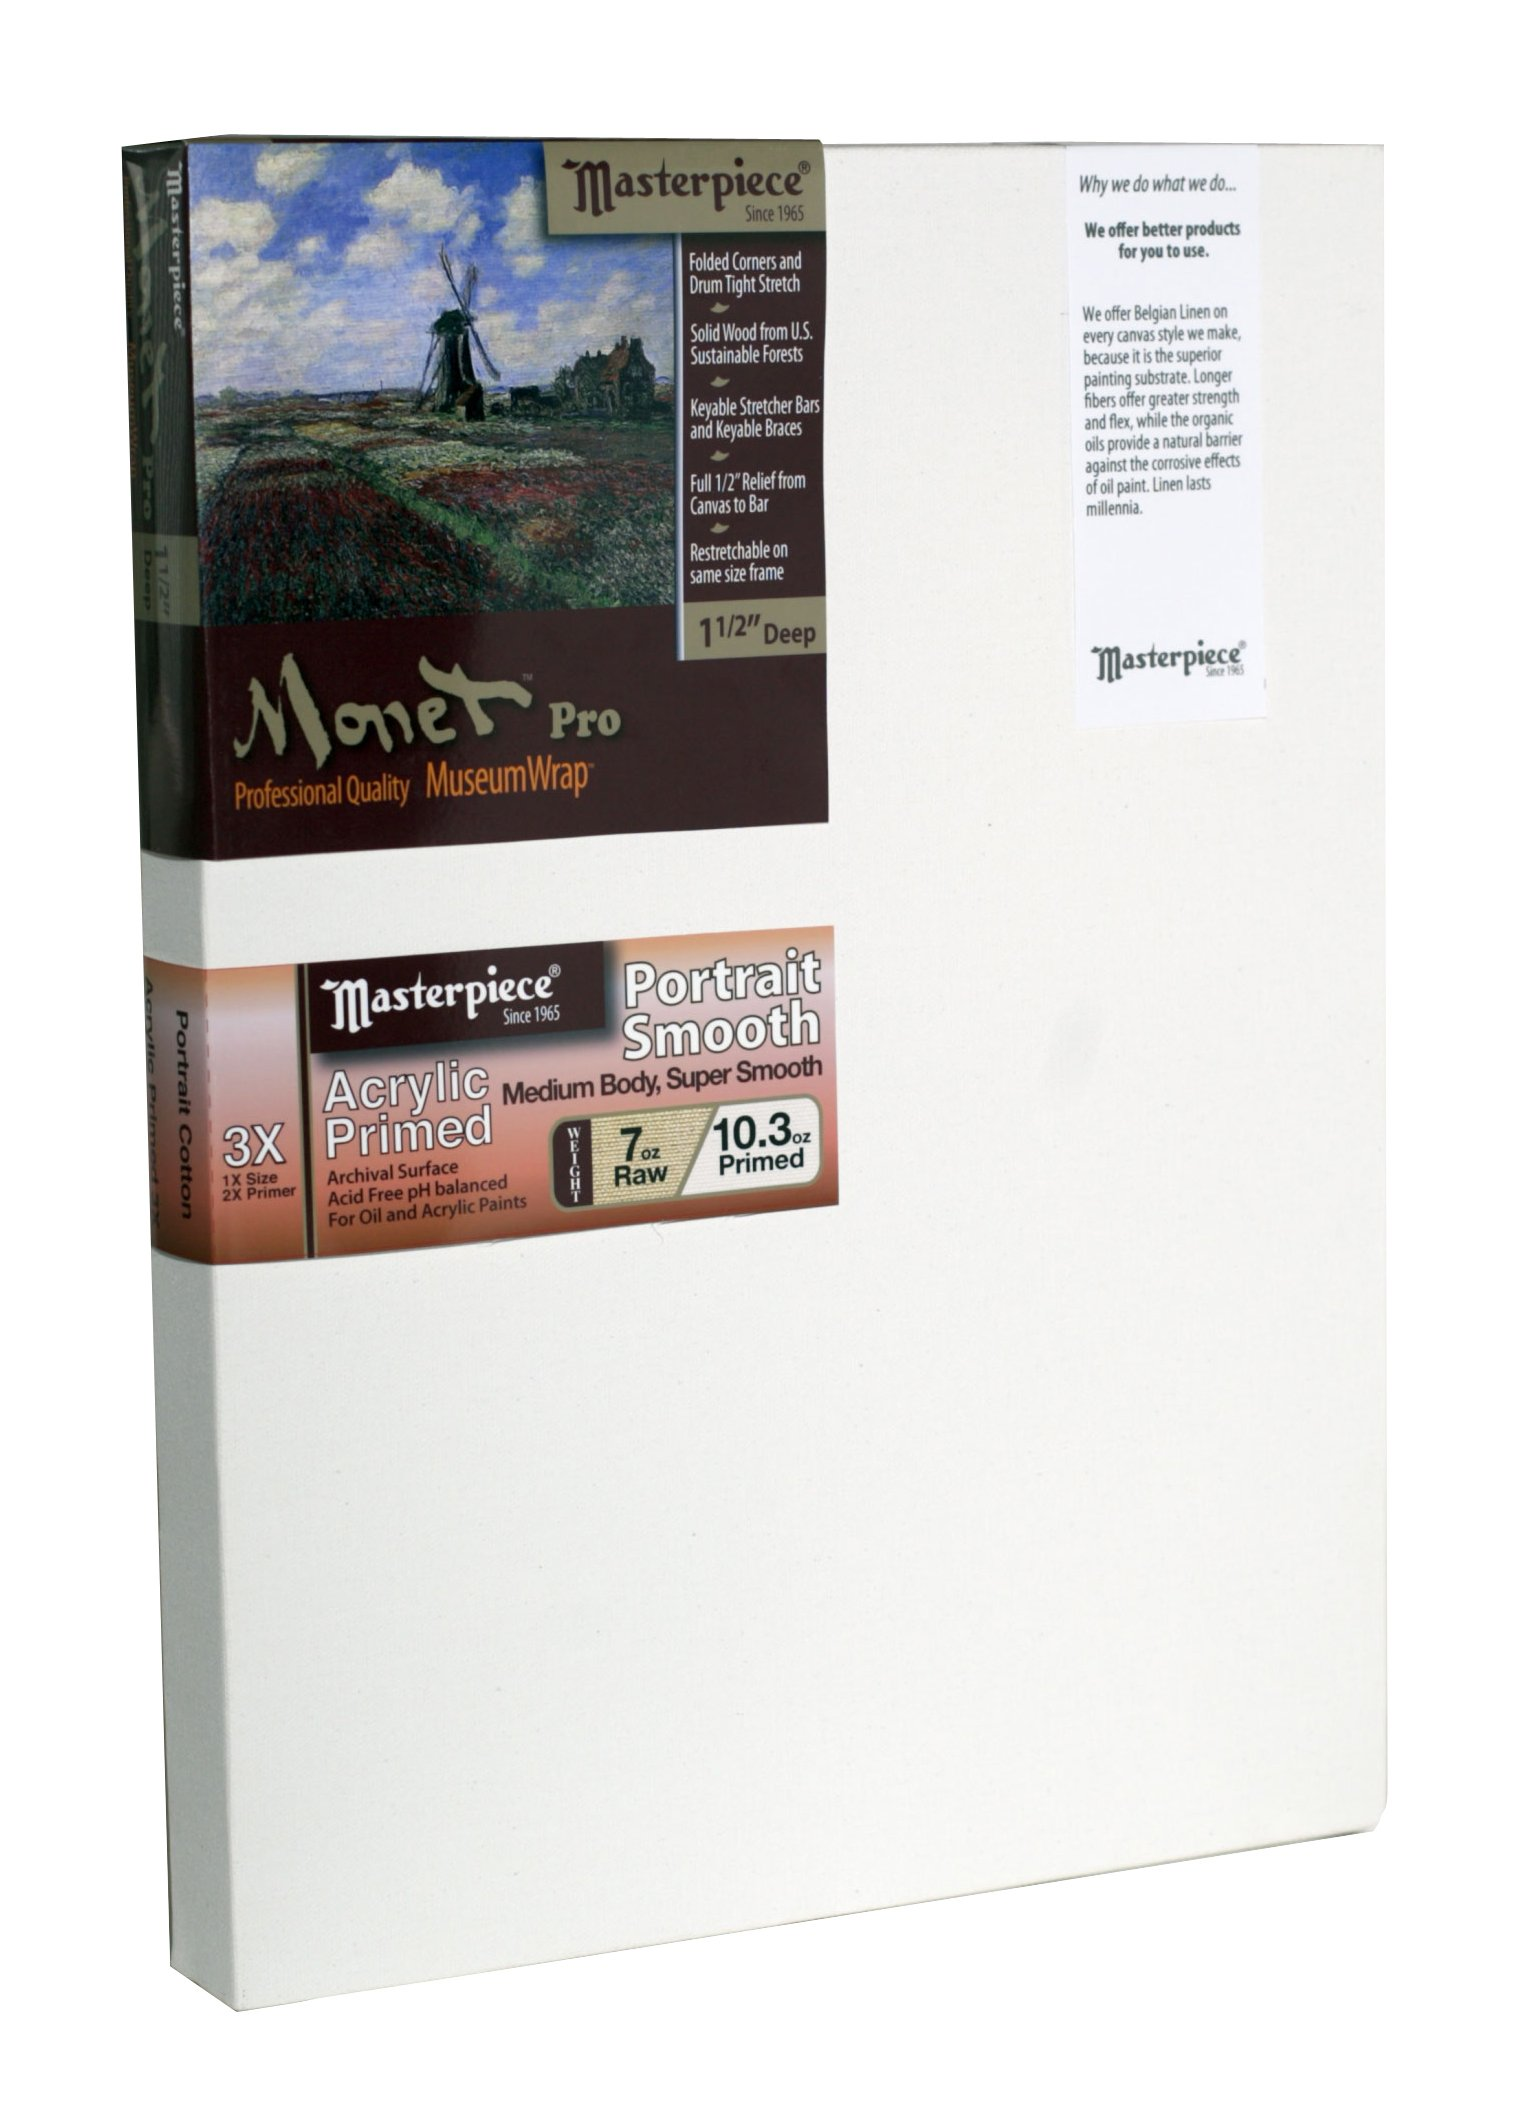 Masterpiece Artist Canvas 43269 Monet PRO 1-1/2'' Deep, 36'' x 48'', Cotton 10.3oz - 3X - Carmel Portrait Smooth